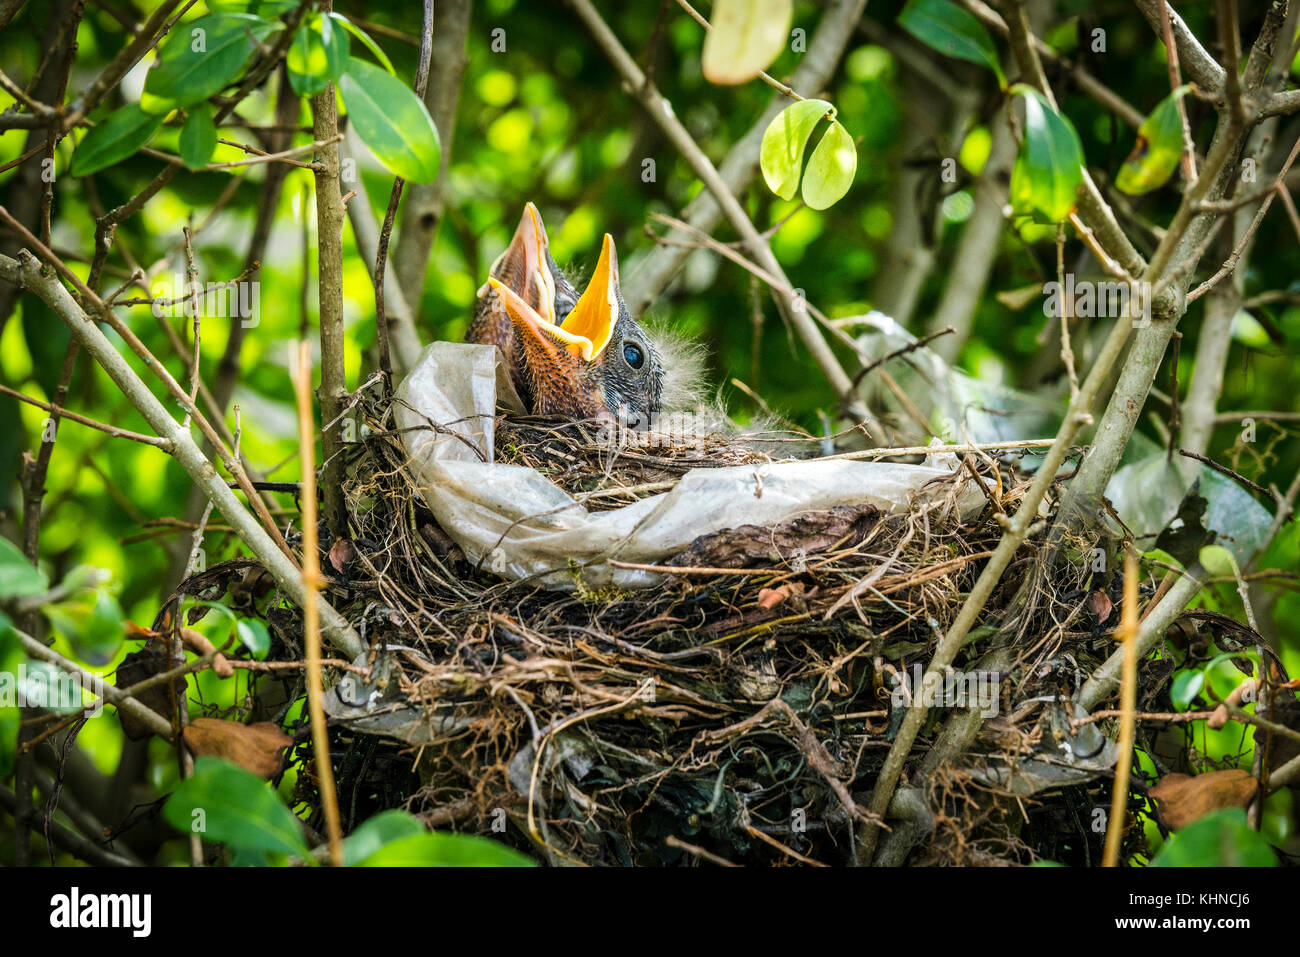 Newly hatched blackbirds in a birds nest in green nature with open beaks waiting for food - Stock Image